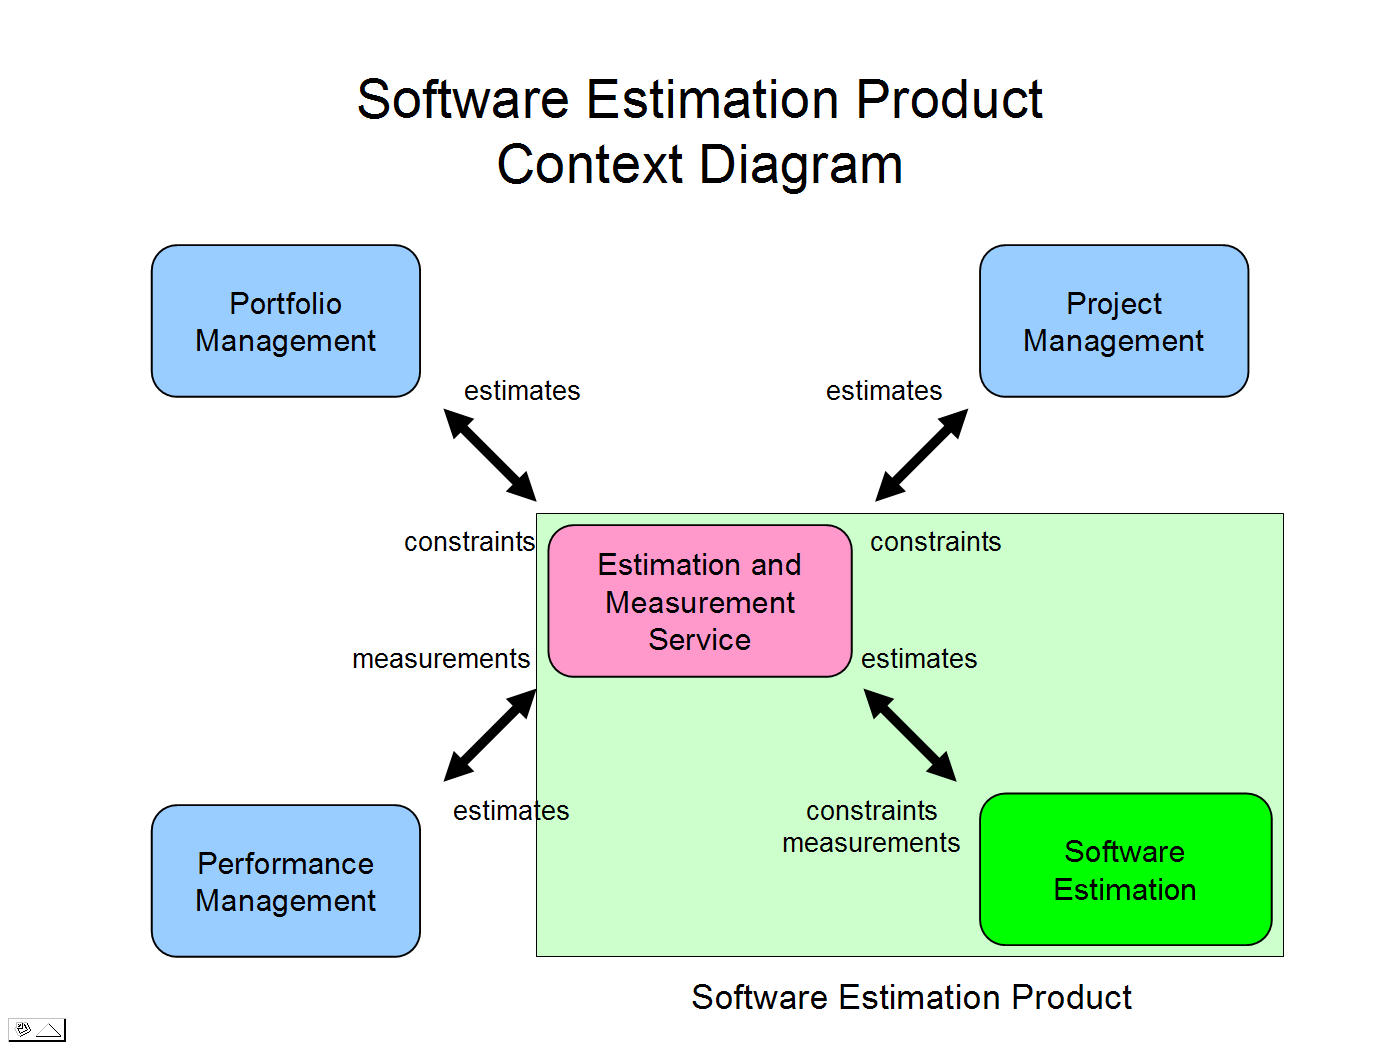 context level diagram visio for pimples on face product great installation of wiring ems 1 0 rest api architecture estimation and measurement open rh archive services net data flow